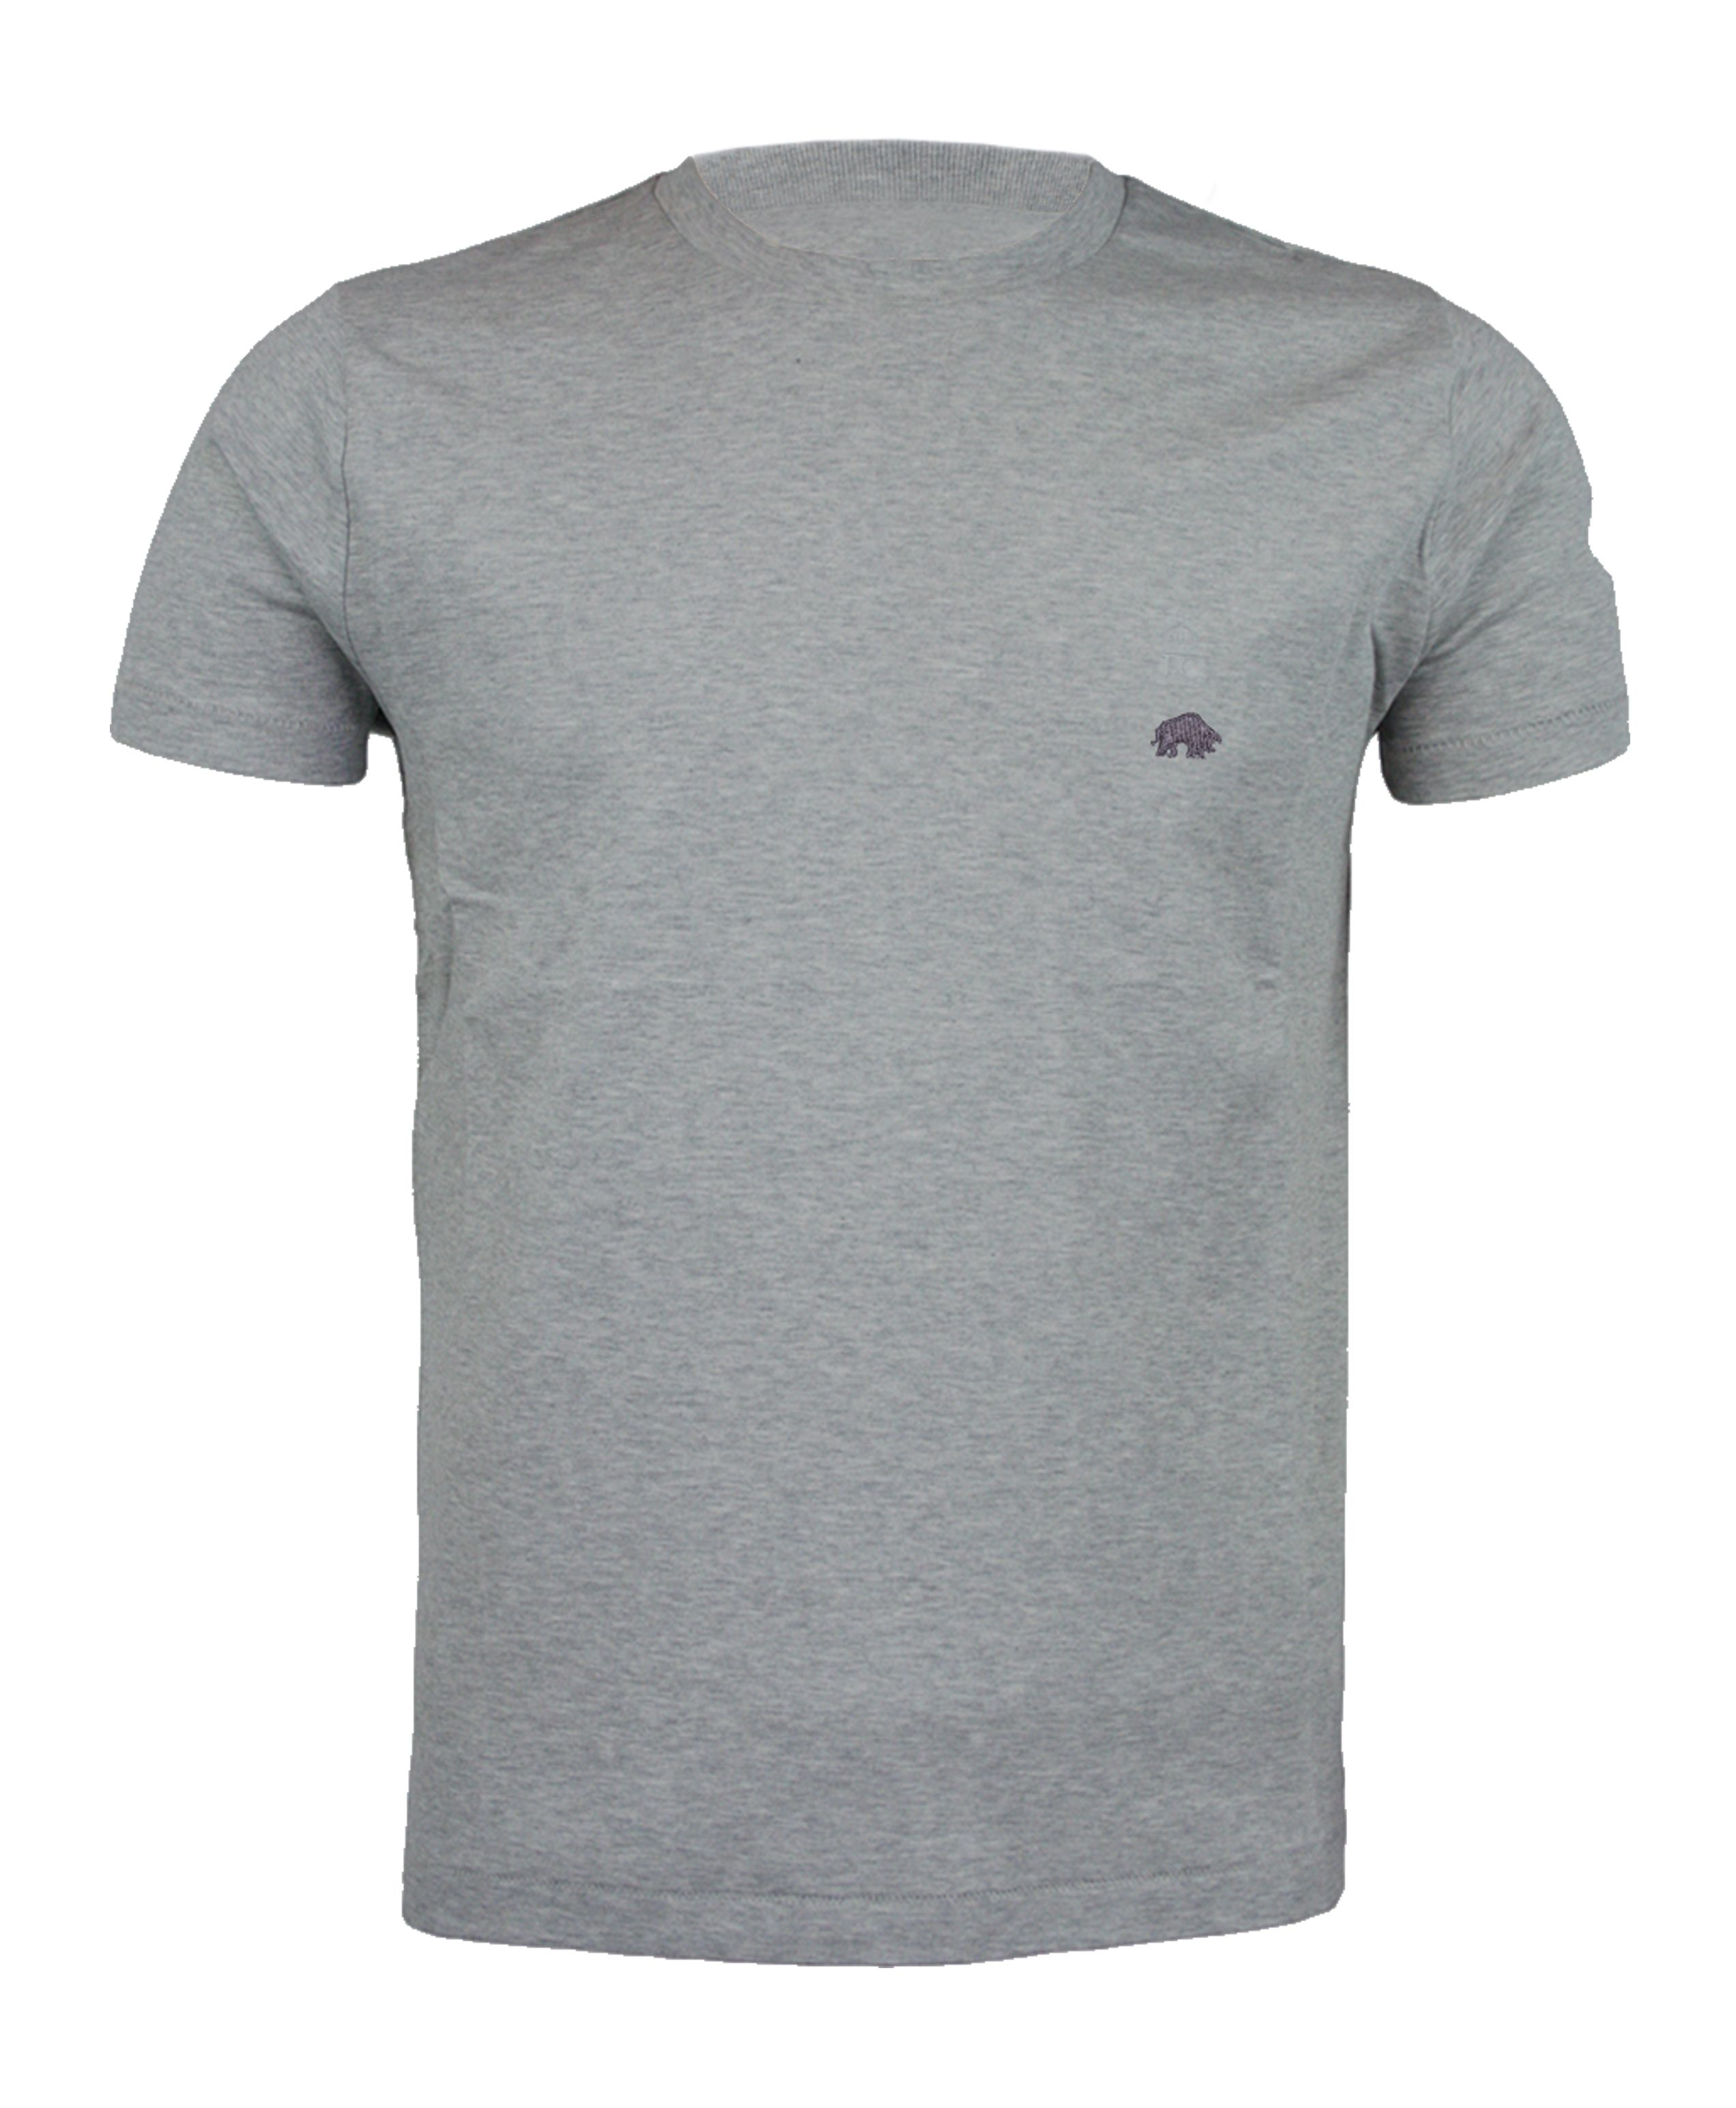 Signature tee marl grey